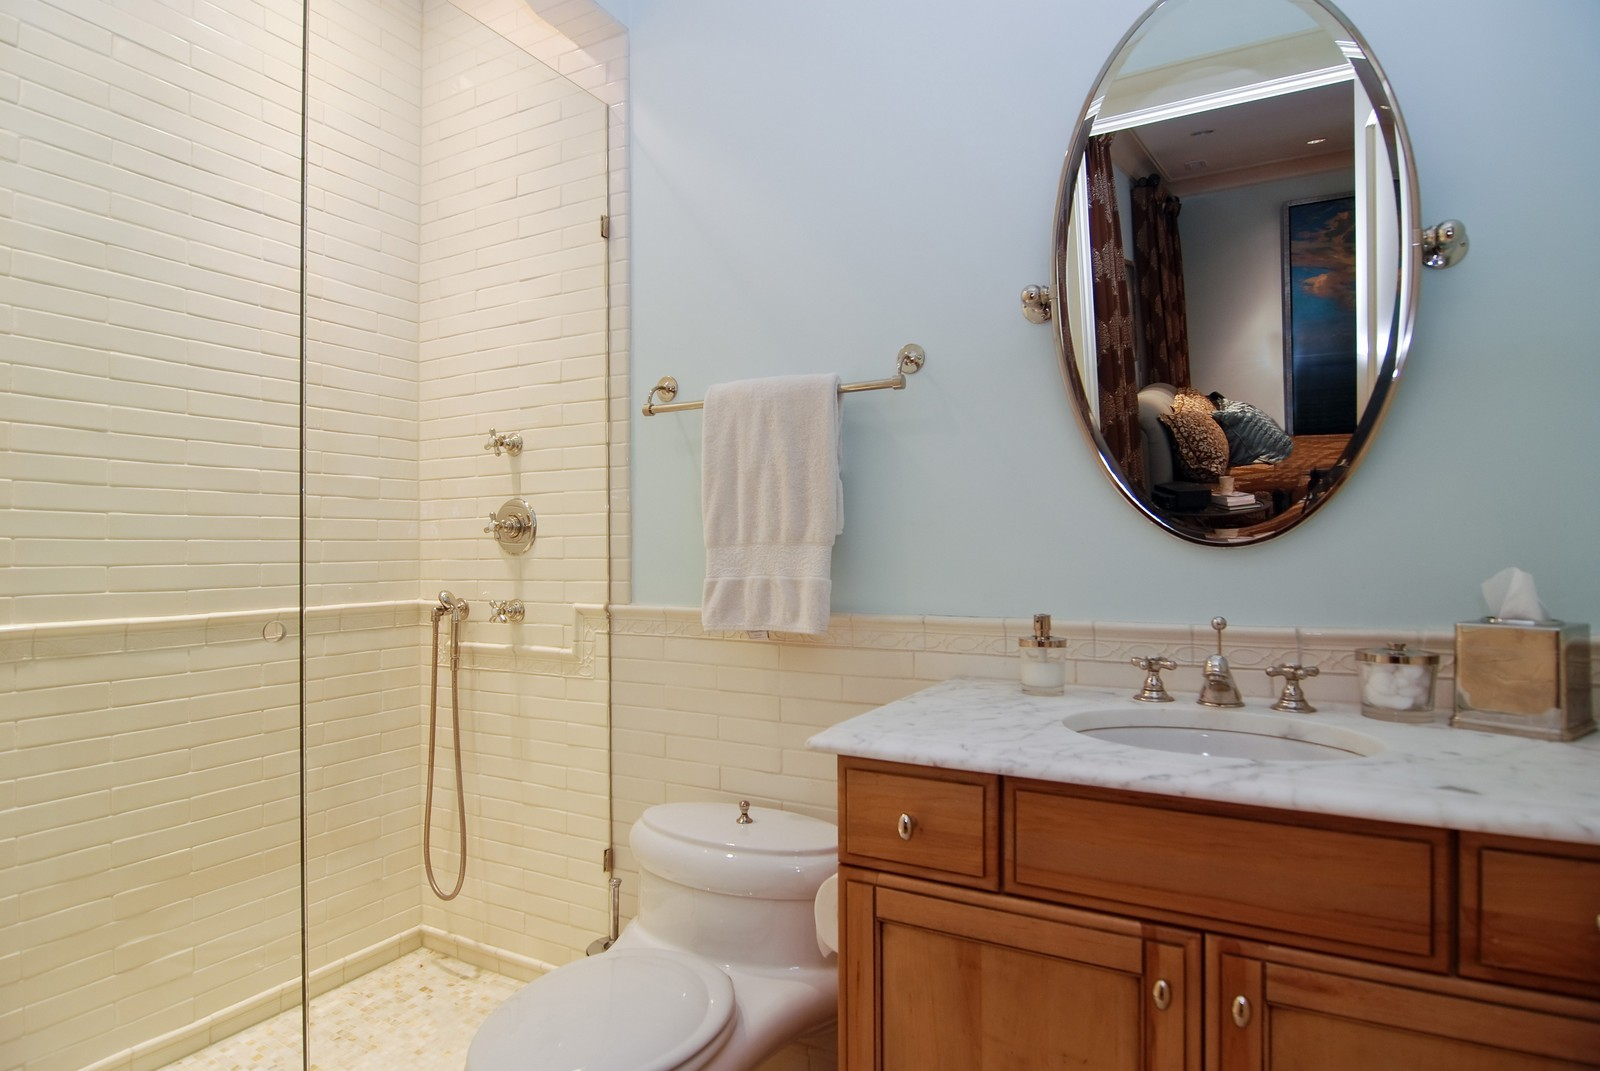 Real Estate Photography - 729 N Kingsbury, Chicago, IL, 60654 - Location 4